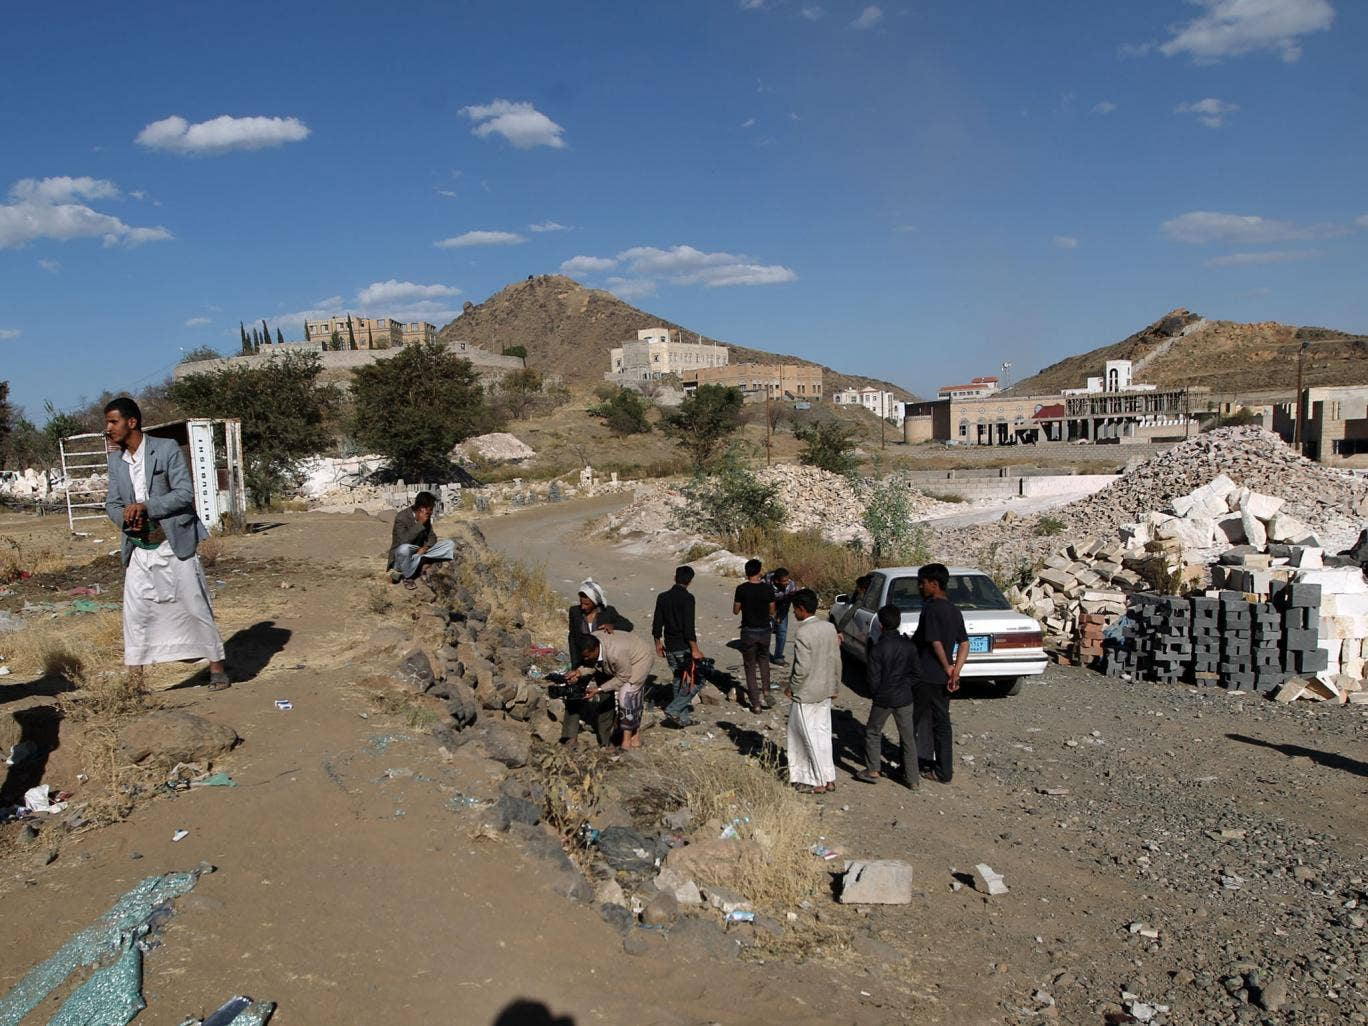 Yemeni men inspect the site where a Saudi diplomat and his bodyguard were killed in Sanaa's southern district of Hada, where embassies and diplomats' residences are located